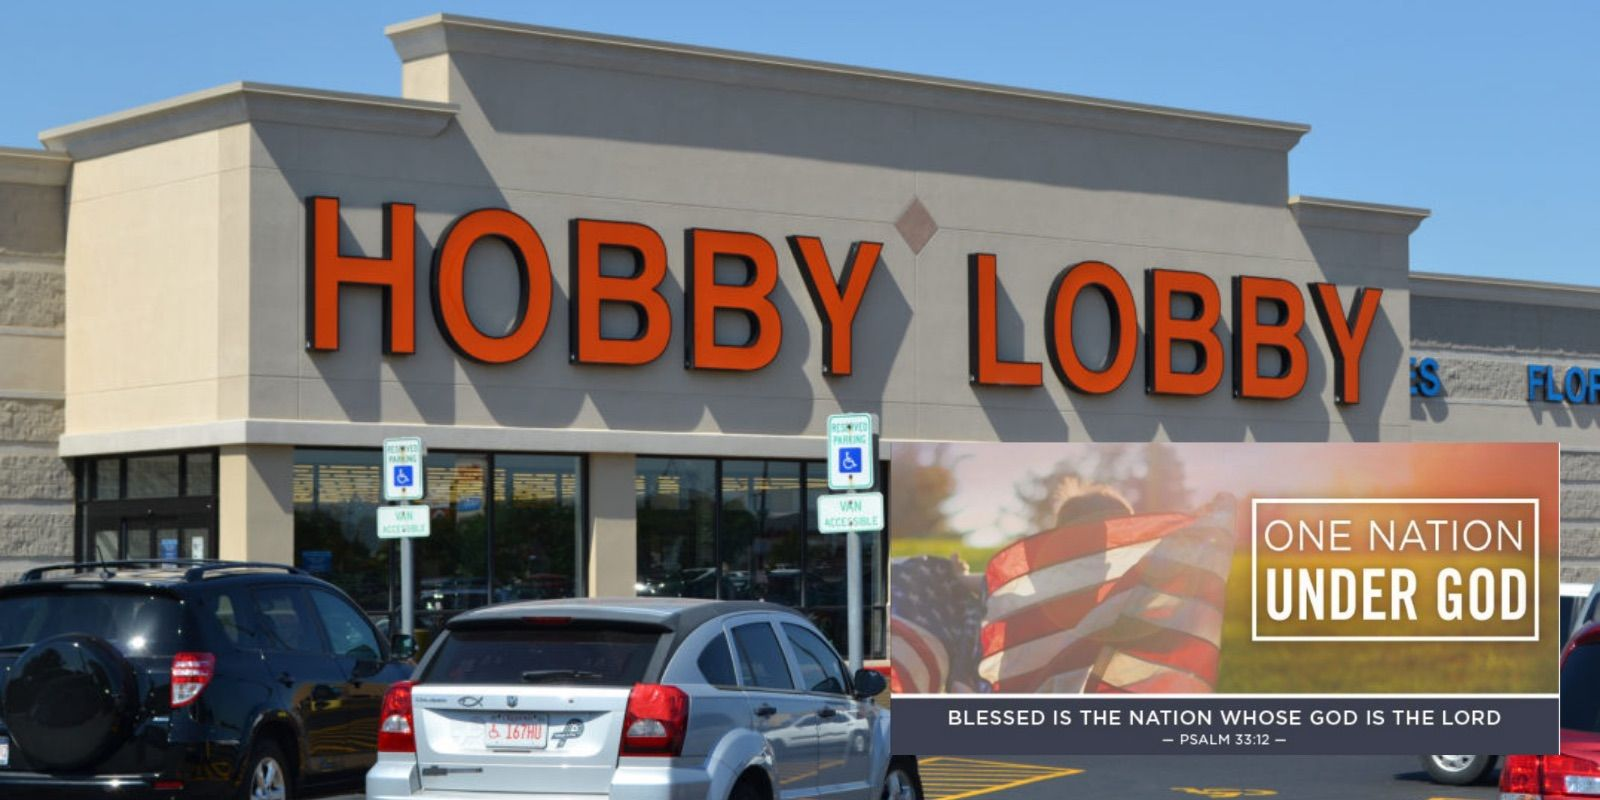 Hobby Lobby faces backlash after issuing ad advocating for the US to be 'one nation under God'